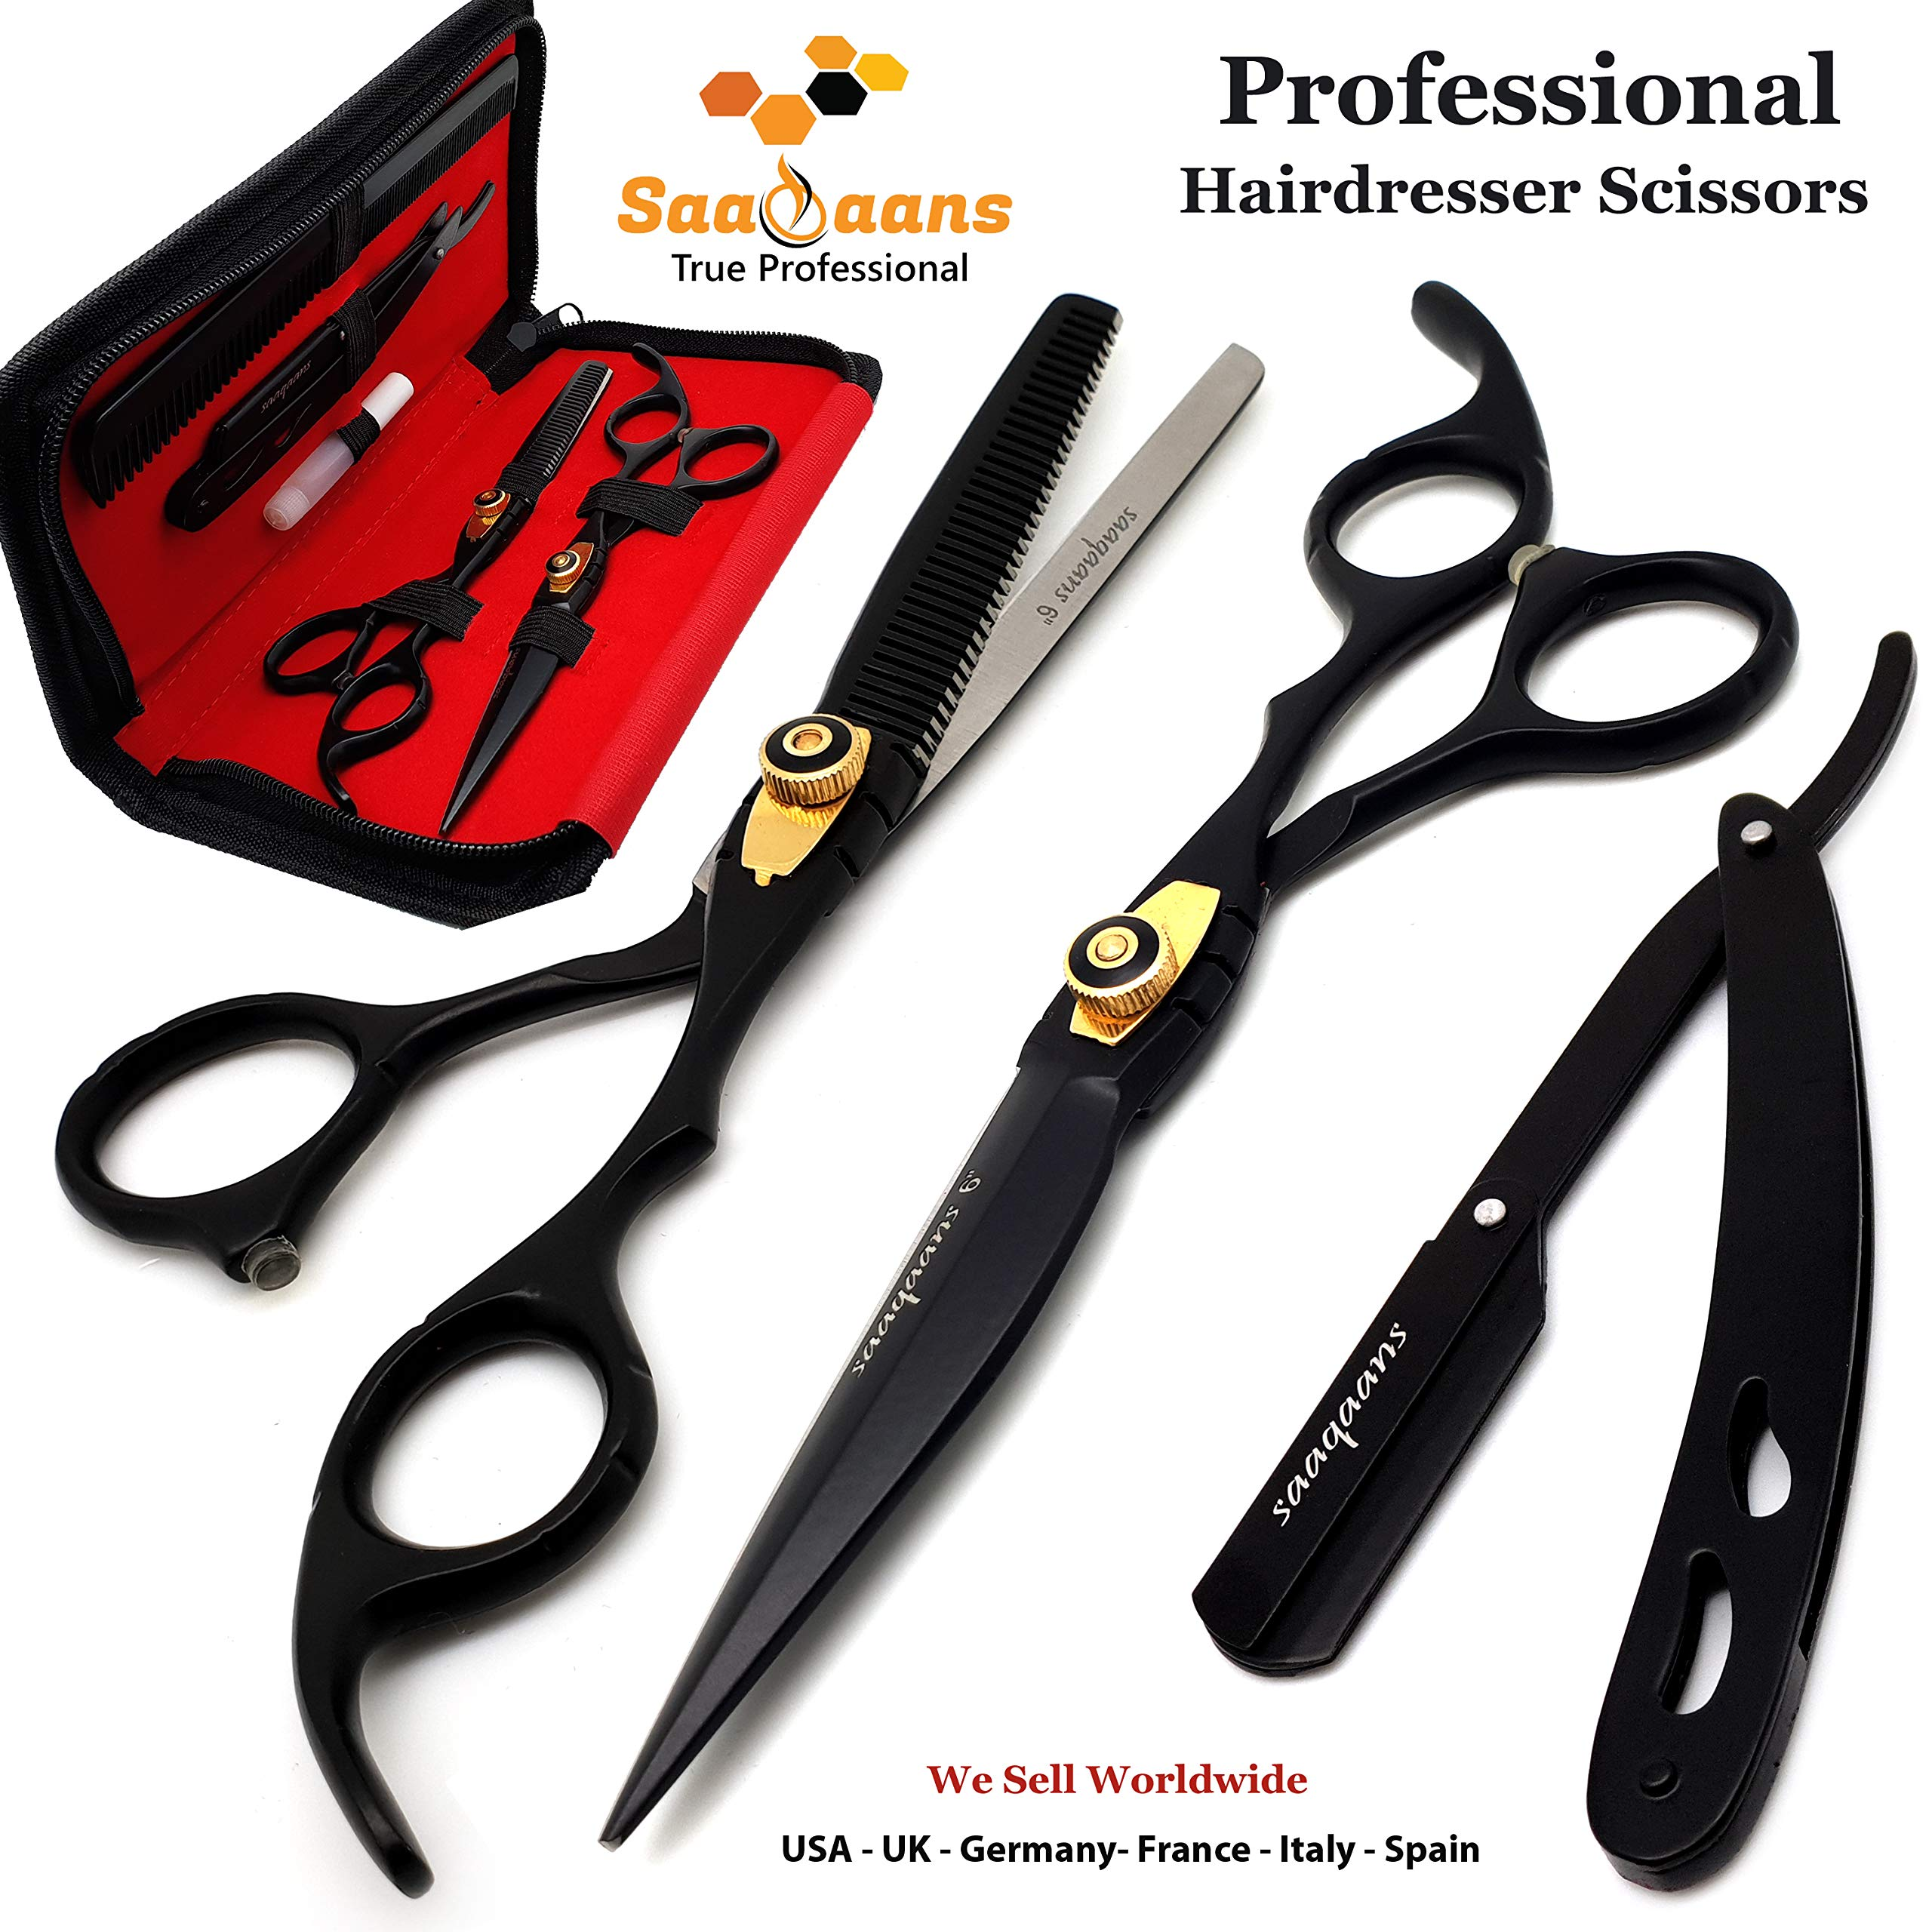 Saaqaans MSS-01 Professional Hairdresser Scissors Set - Package includes Barber Scissor, Thinning Shear, Straight Razor, 10 x Derby Double Edge Blades & Hair Comb in Stylish Scissors Case (USA Black) by Saaqaans